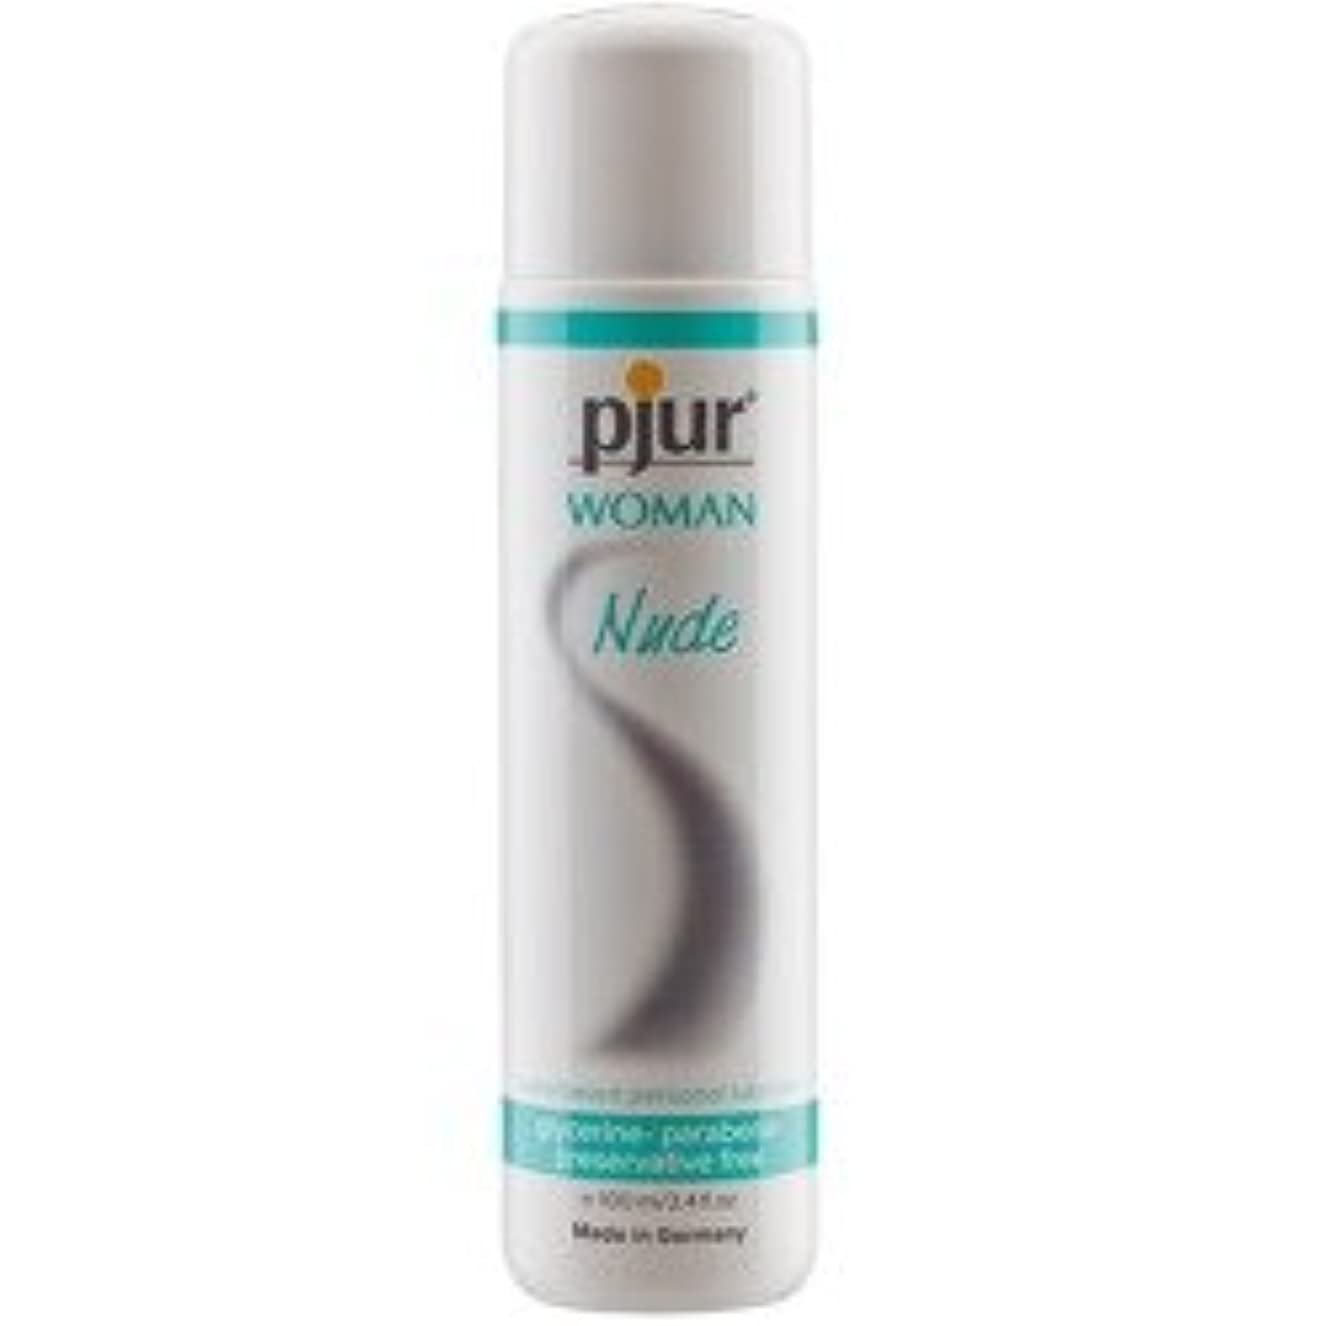 Pjur Woman Nude Lubricant - 100ml